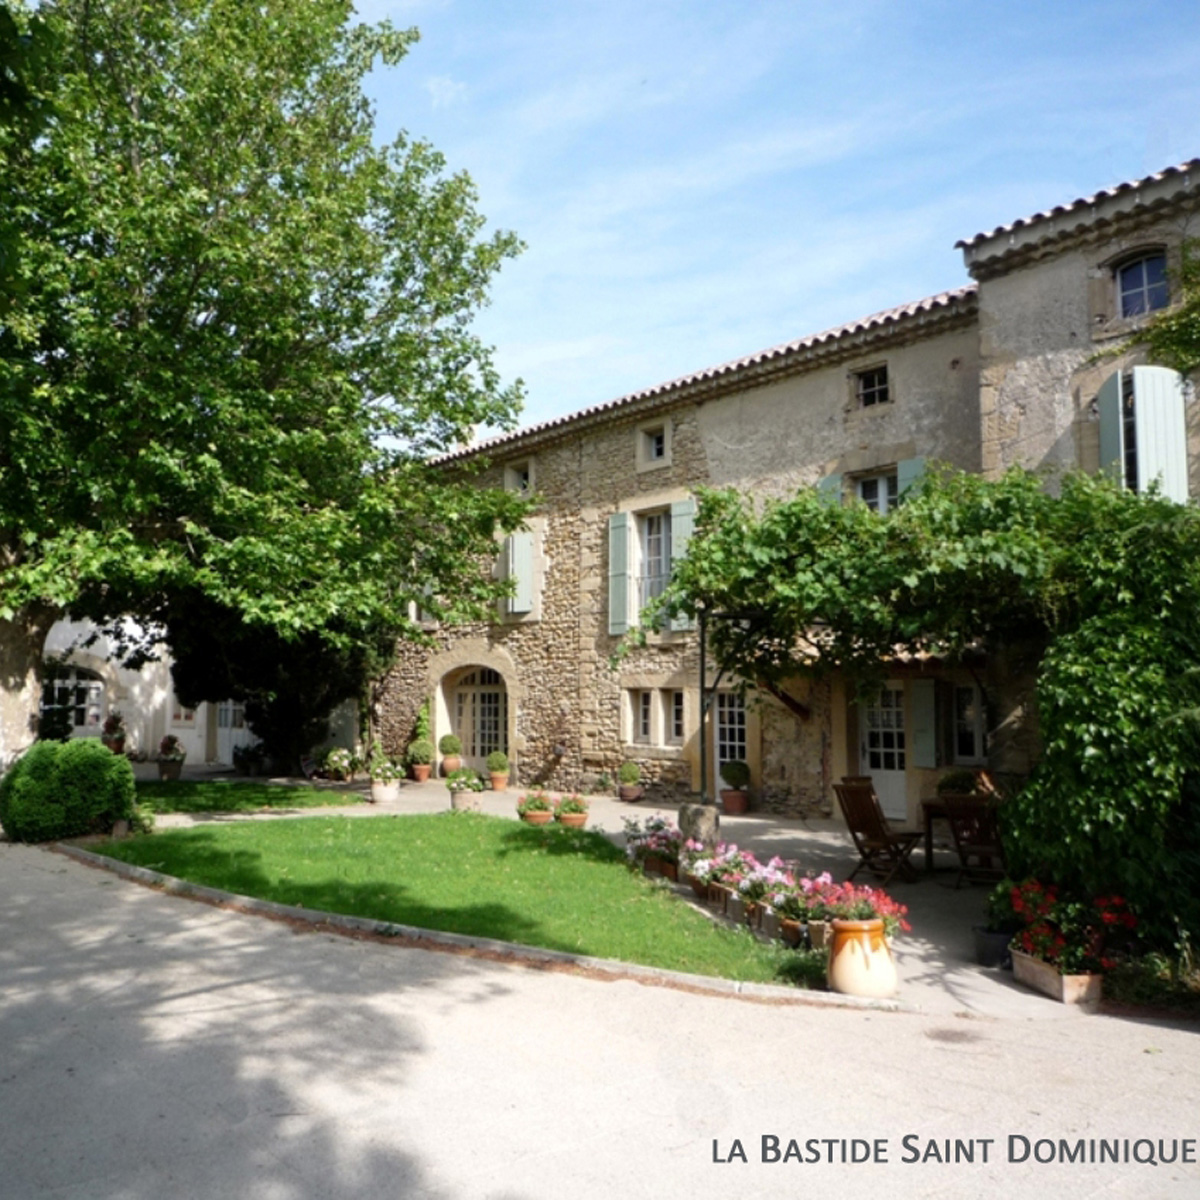 LA BASTIDE SAINT DOMINIQUE